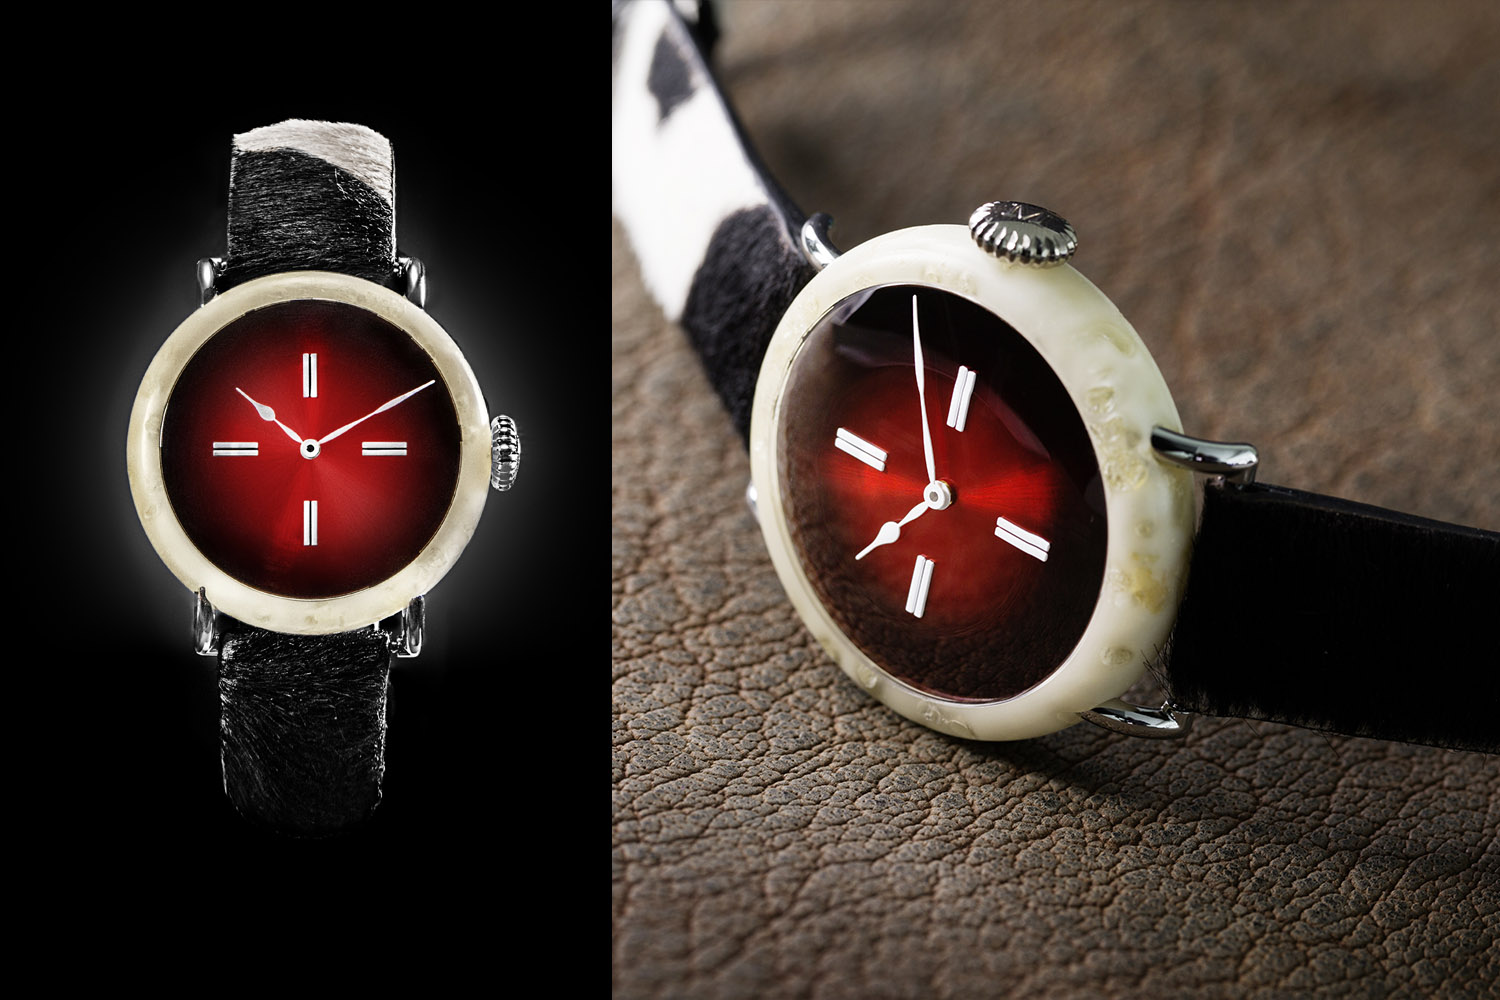 Christie's To Auction H. Moser & Cie. Cheese Swiss Mad Watch and Swiss Alp Watch Prototype (To Promote Swiss Watchmaking)